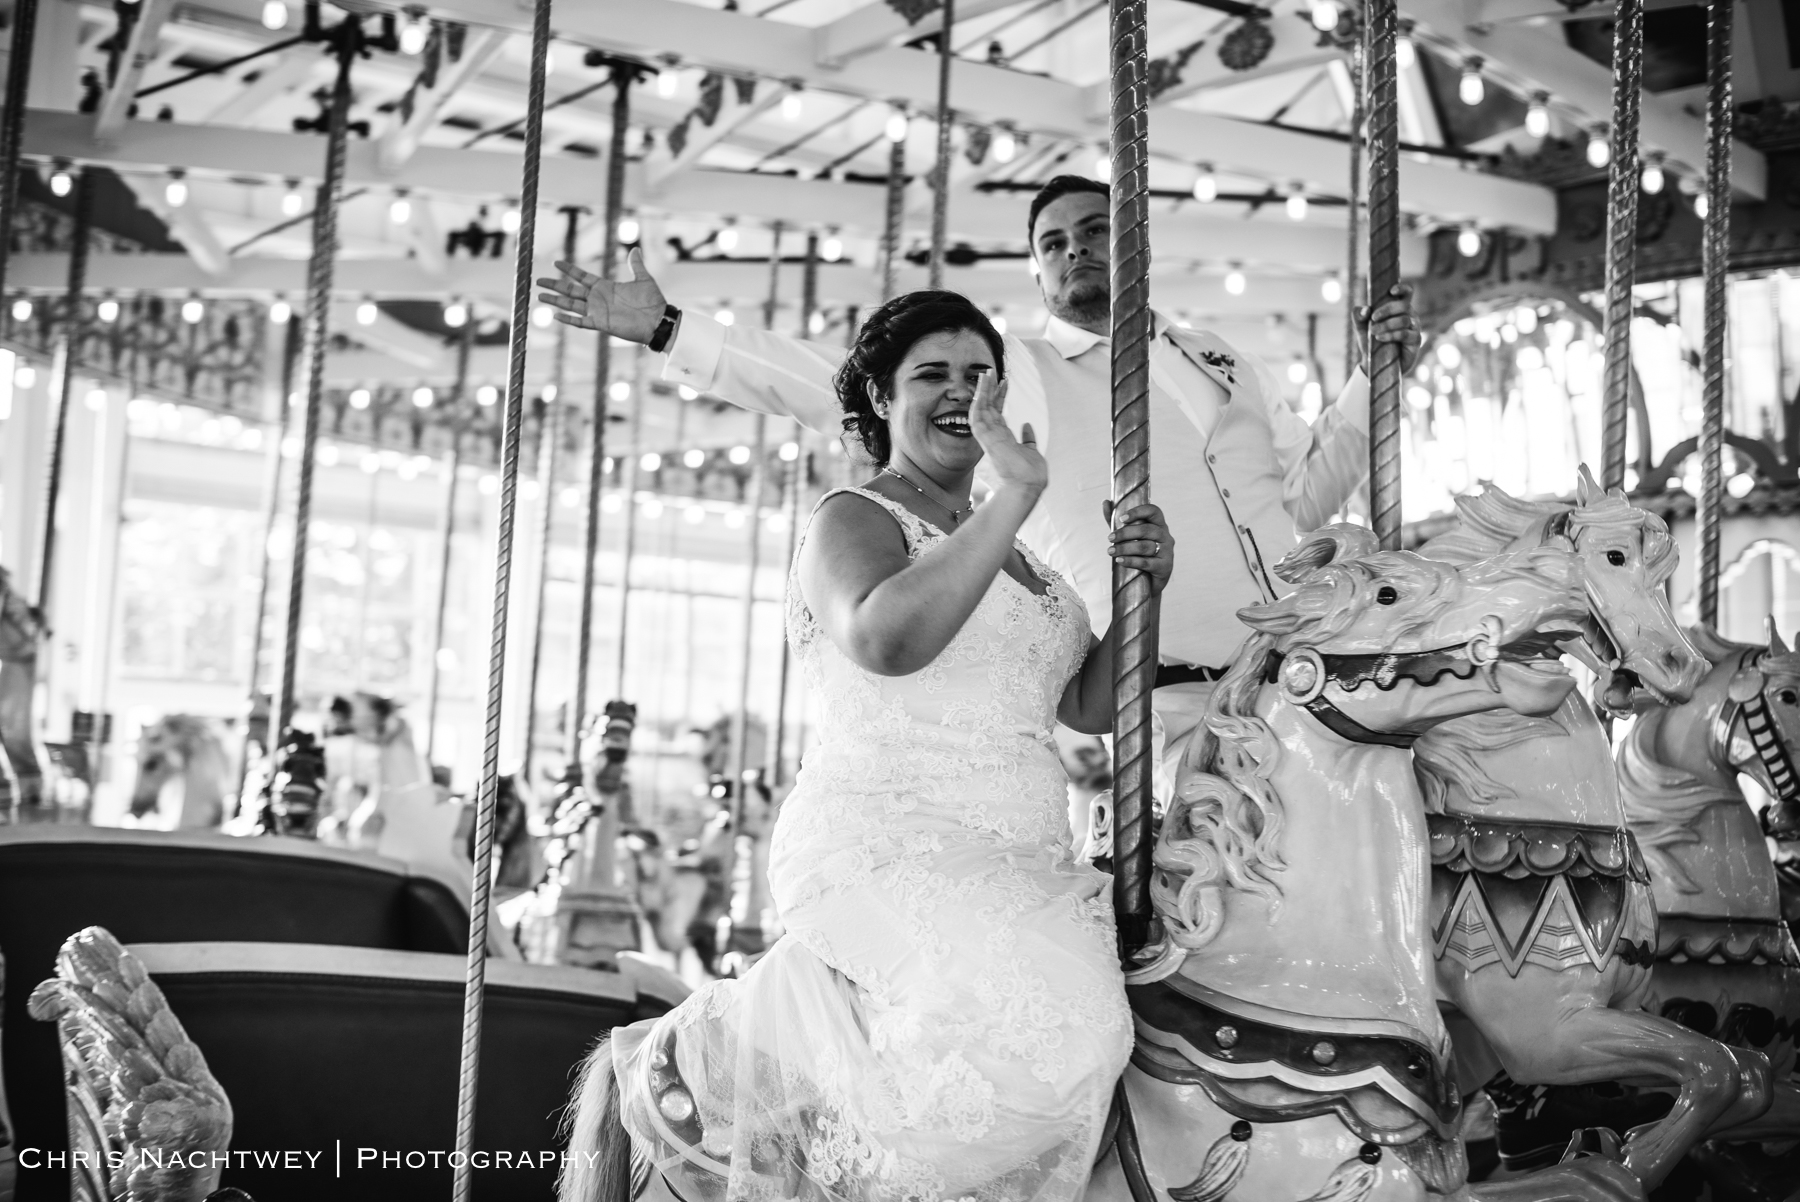 photos-wedding-lighthouse-point-park-carousel-new-haven-chris-nachtwey-photography-2019-44.jpg